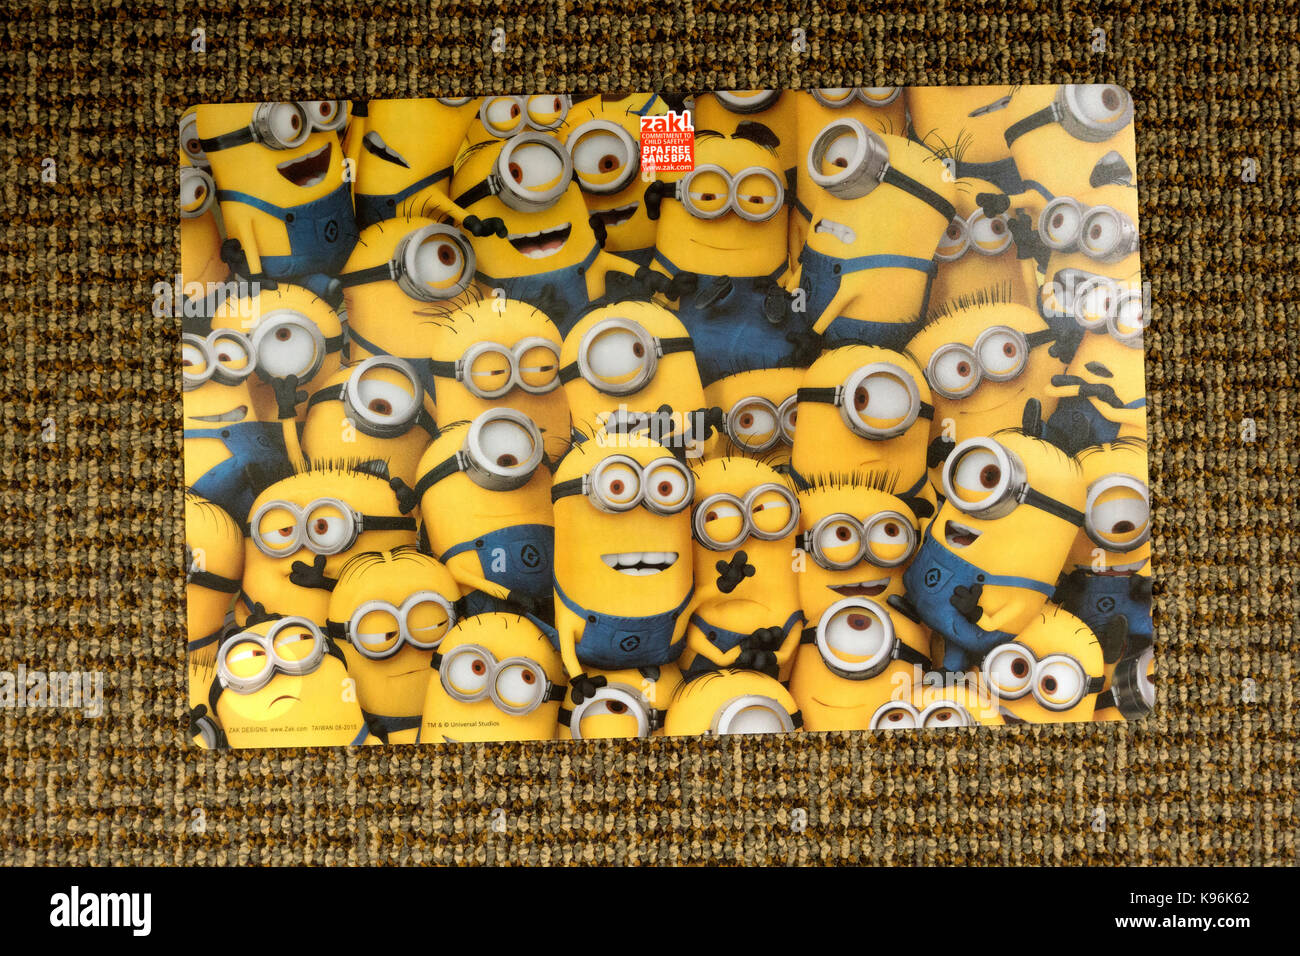 Table place mat filled with Minions. St Paul Minnesota MN USA - Stock Image